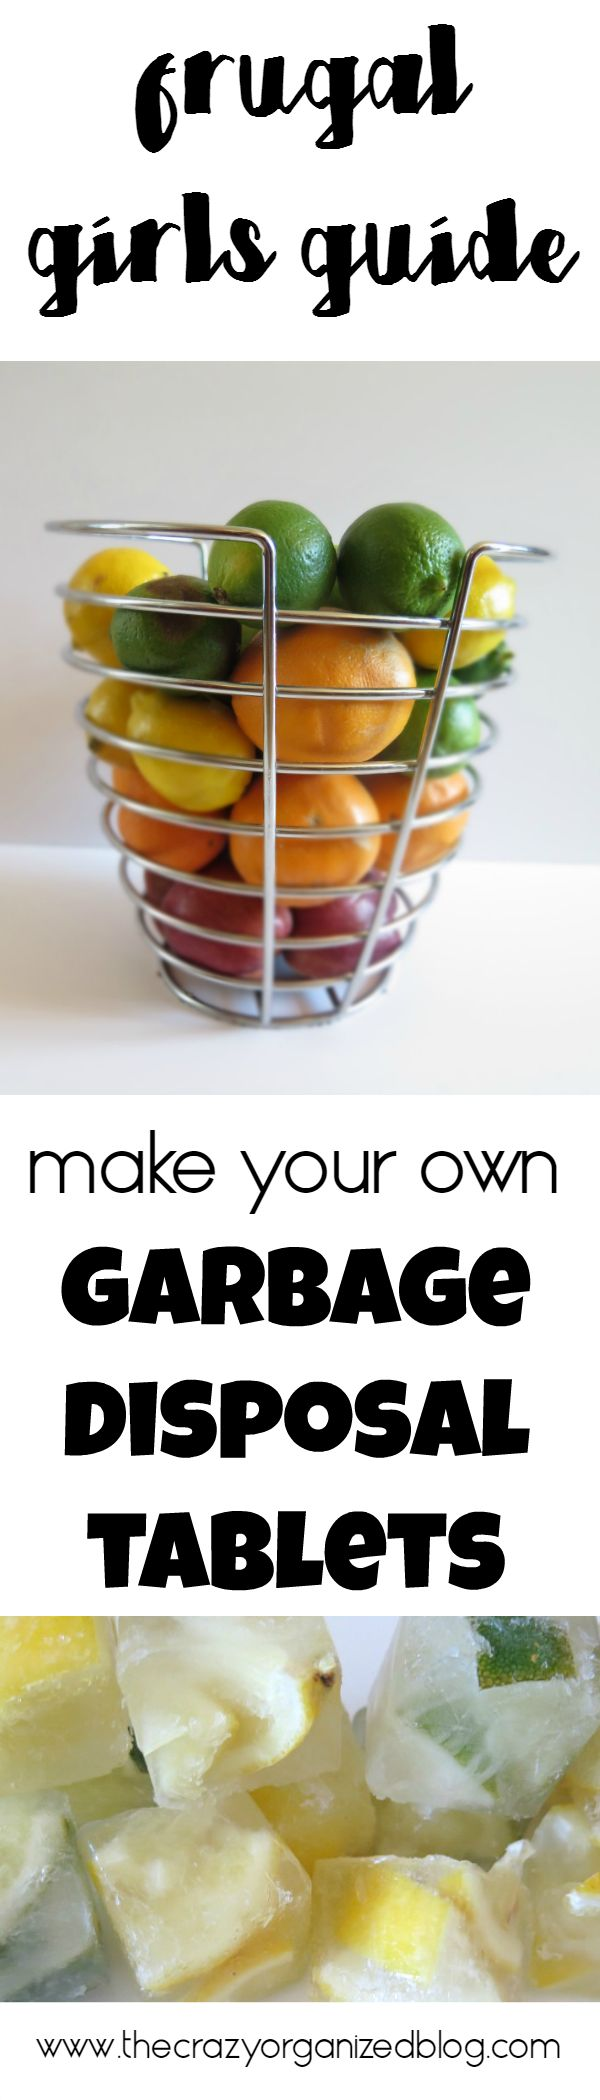 Save money and make your own garbage disposal tablets! all you need is TWO ingredients from your kitchen!